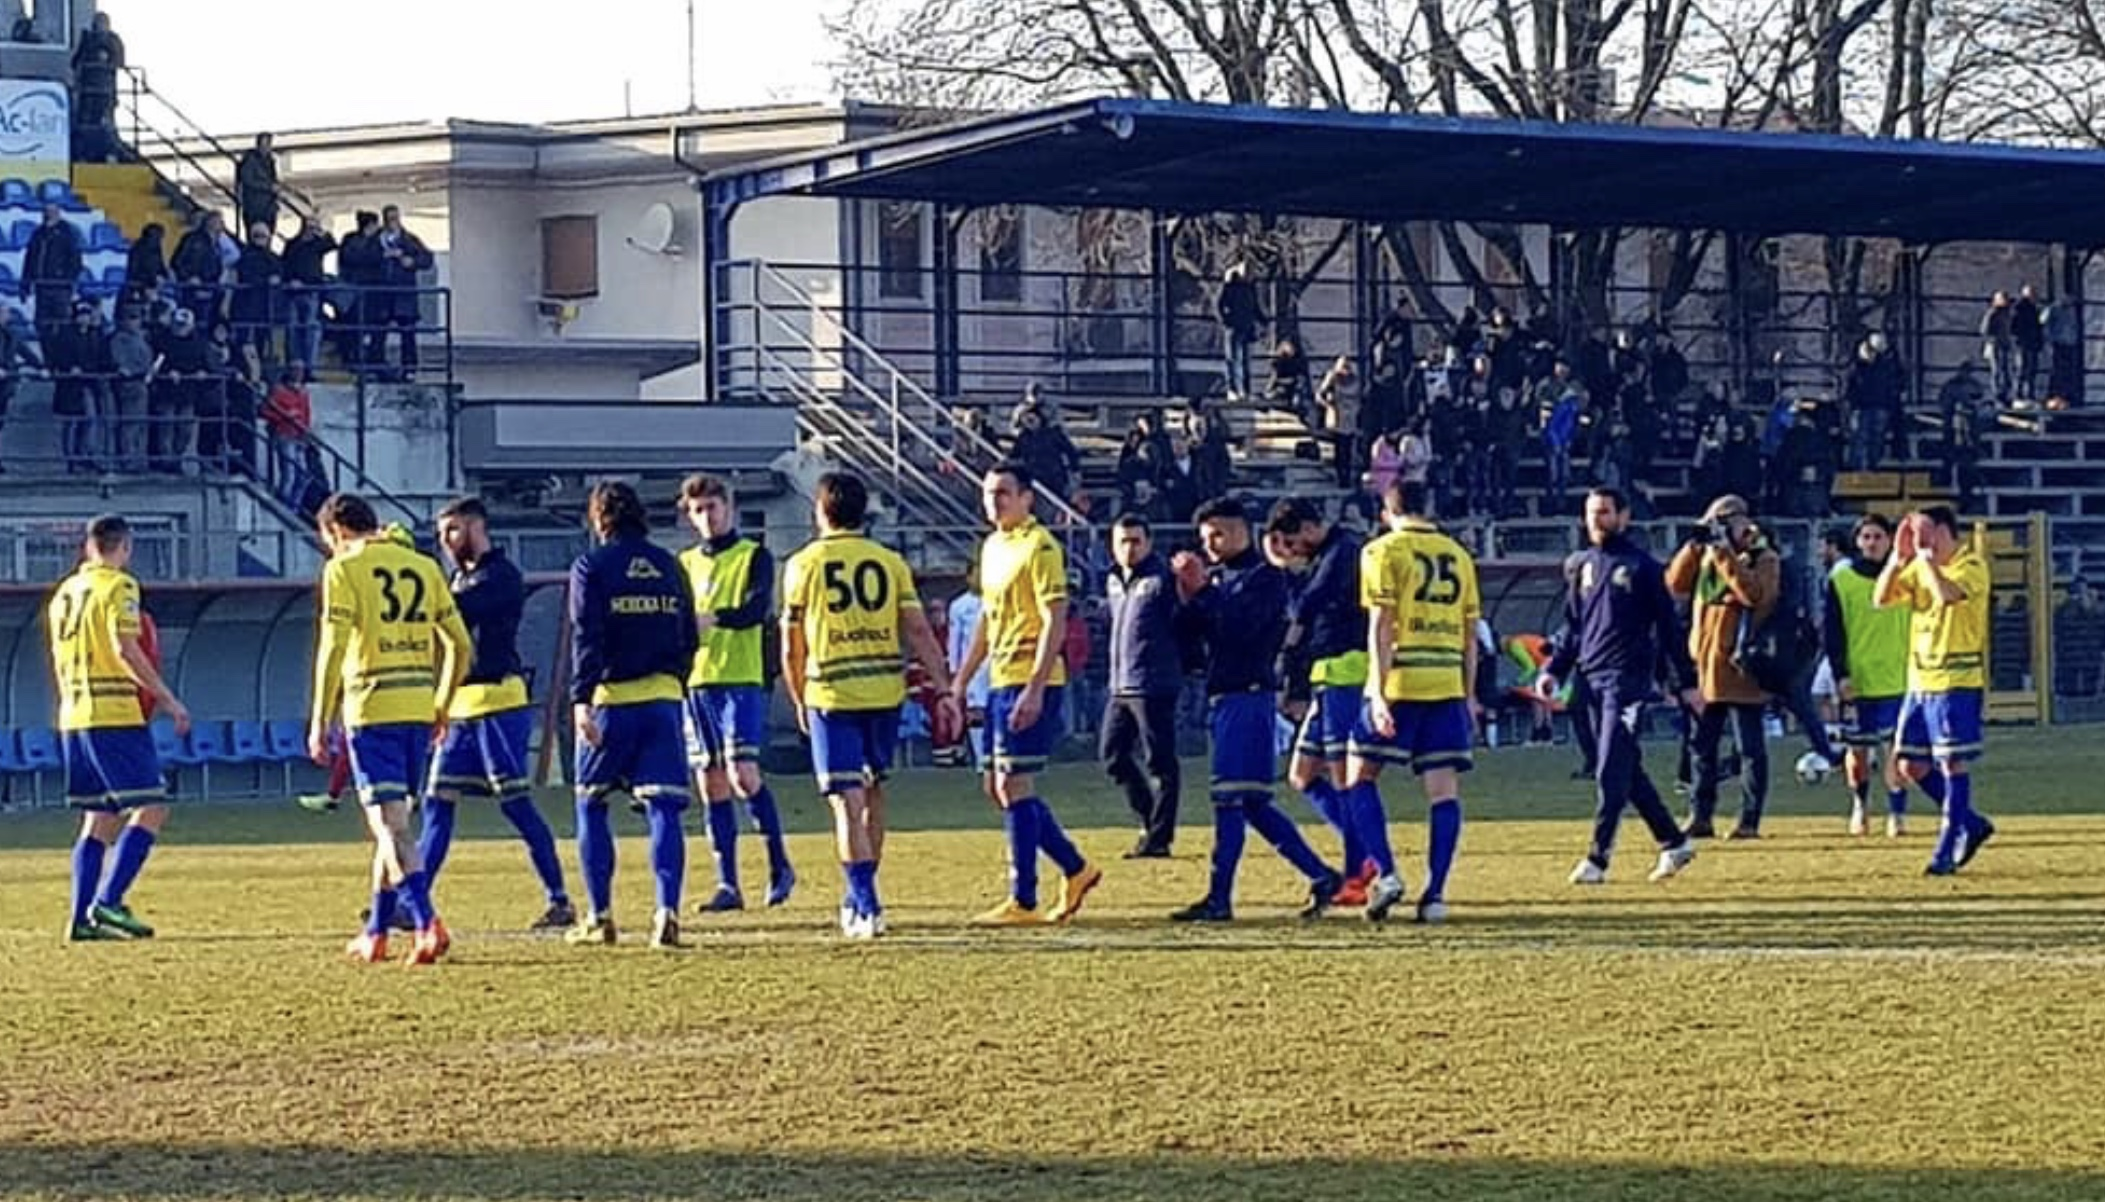 Serie D, highlights Crema-Modena 1-1